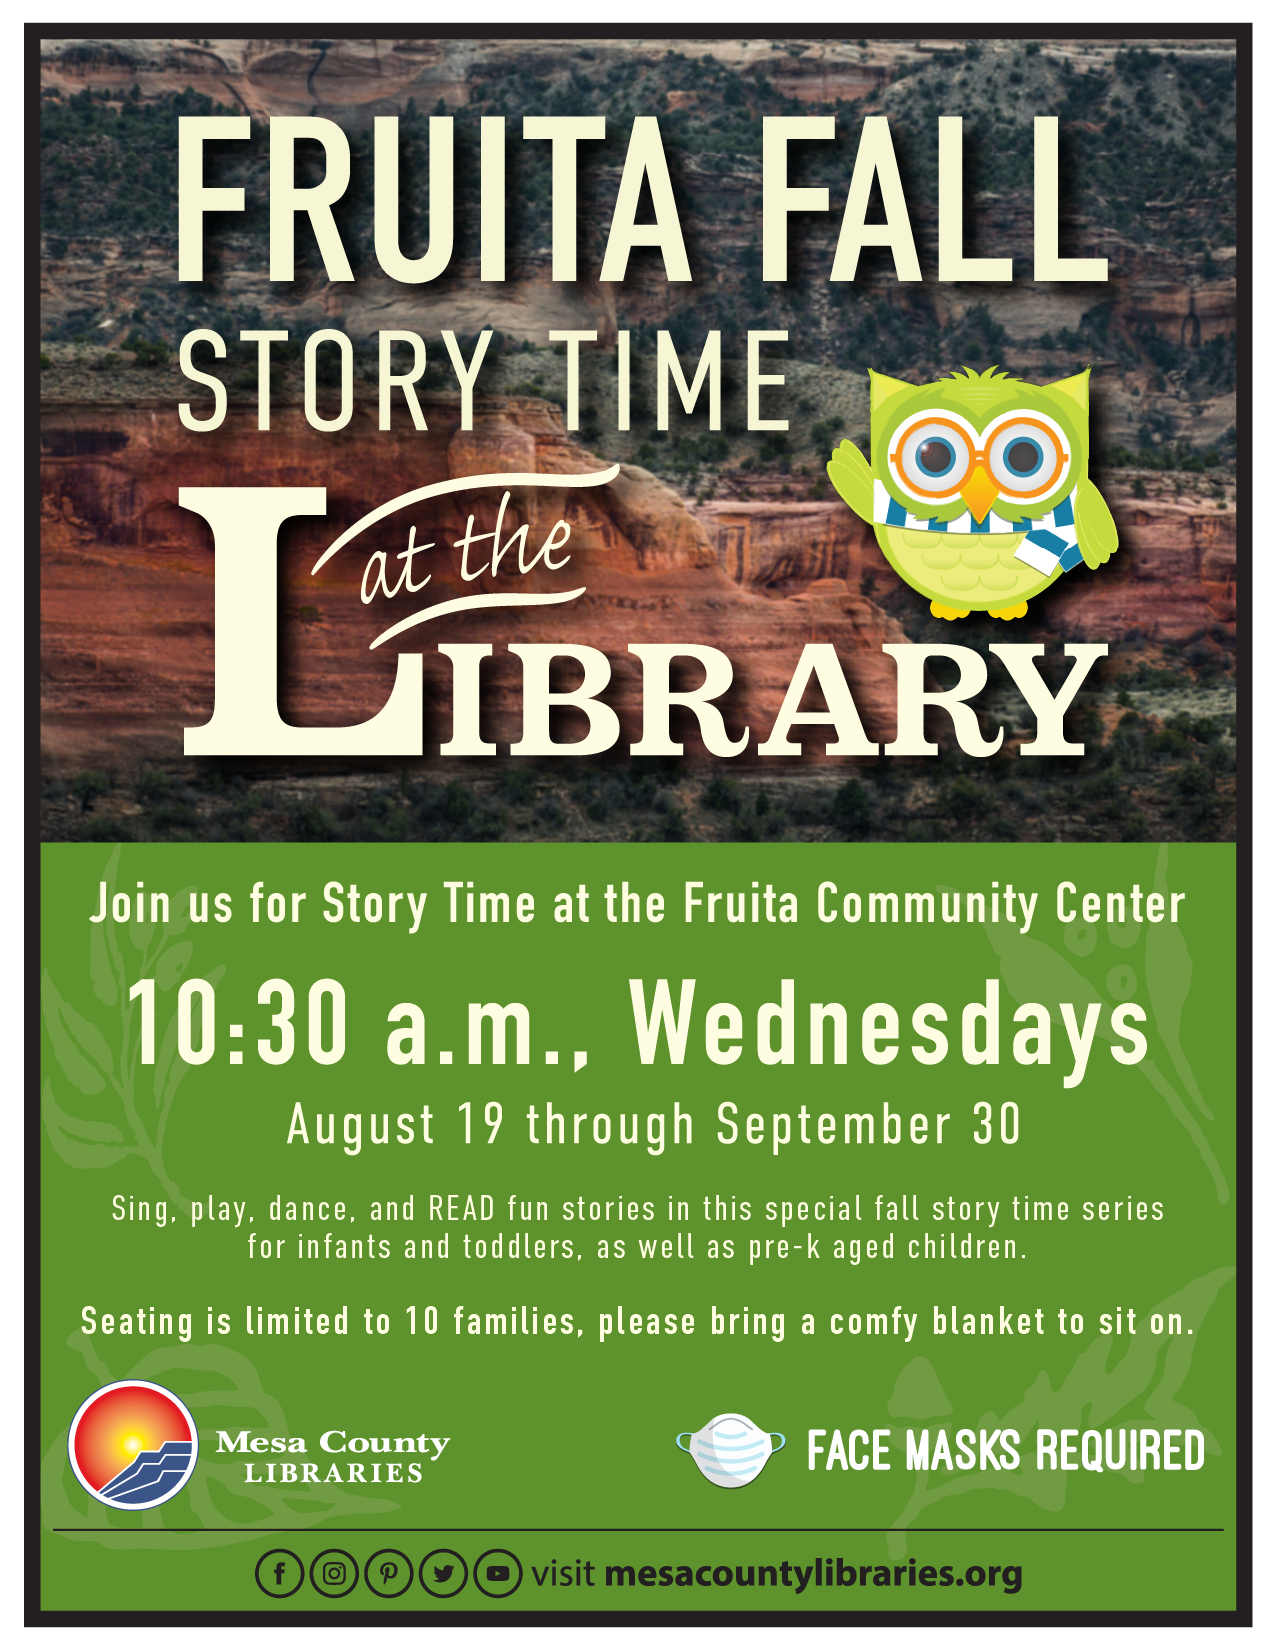 Fruita Fall Story Time at the Library